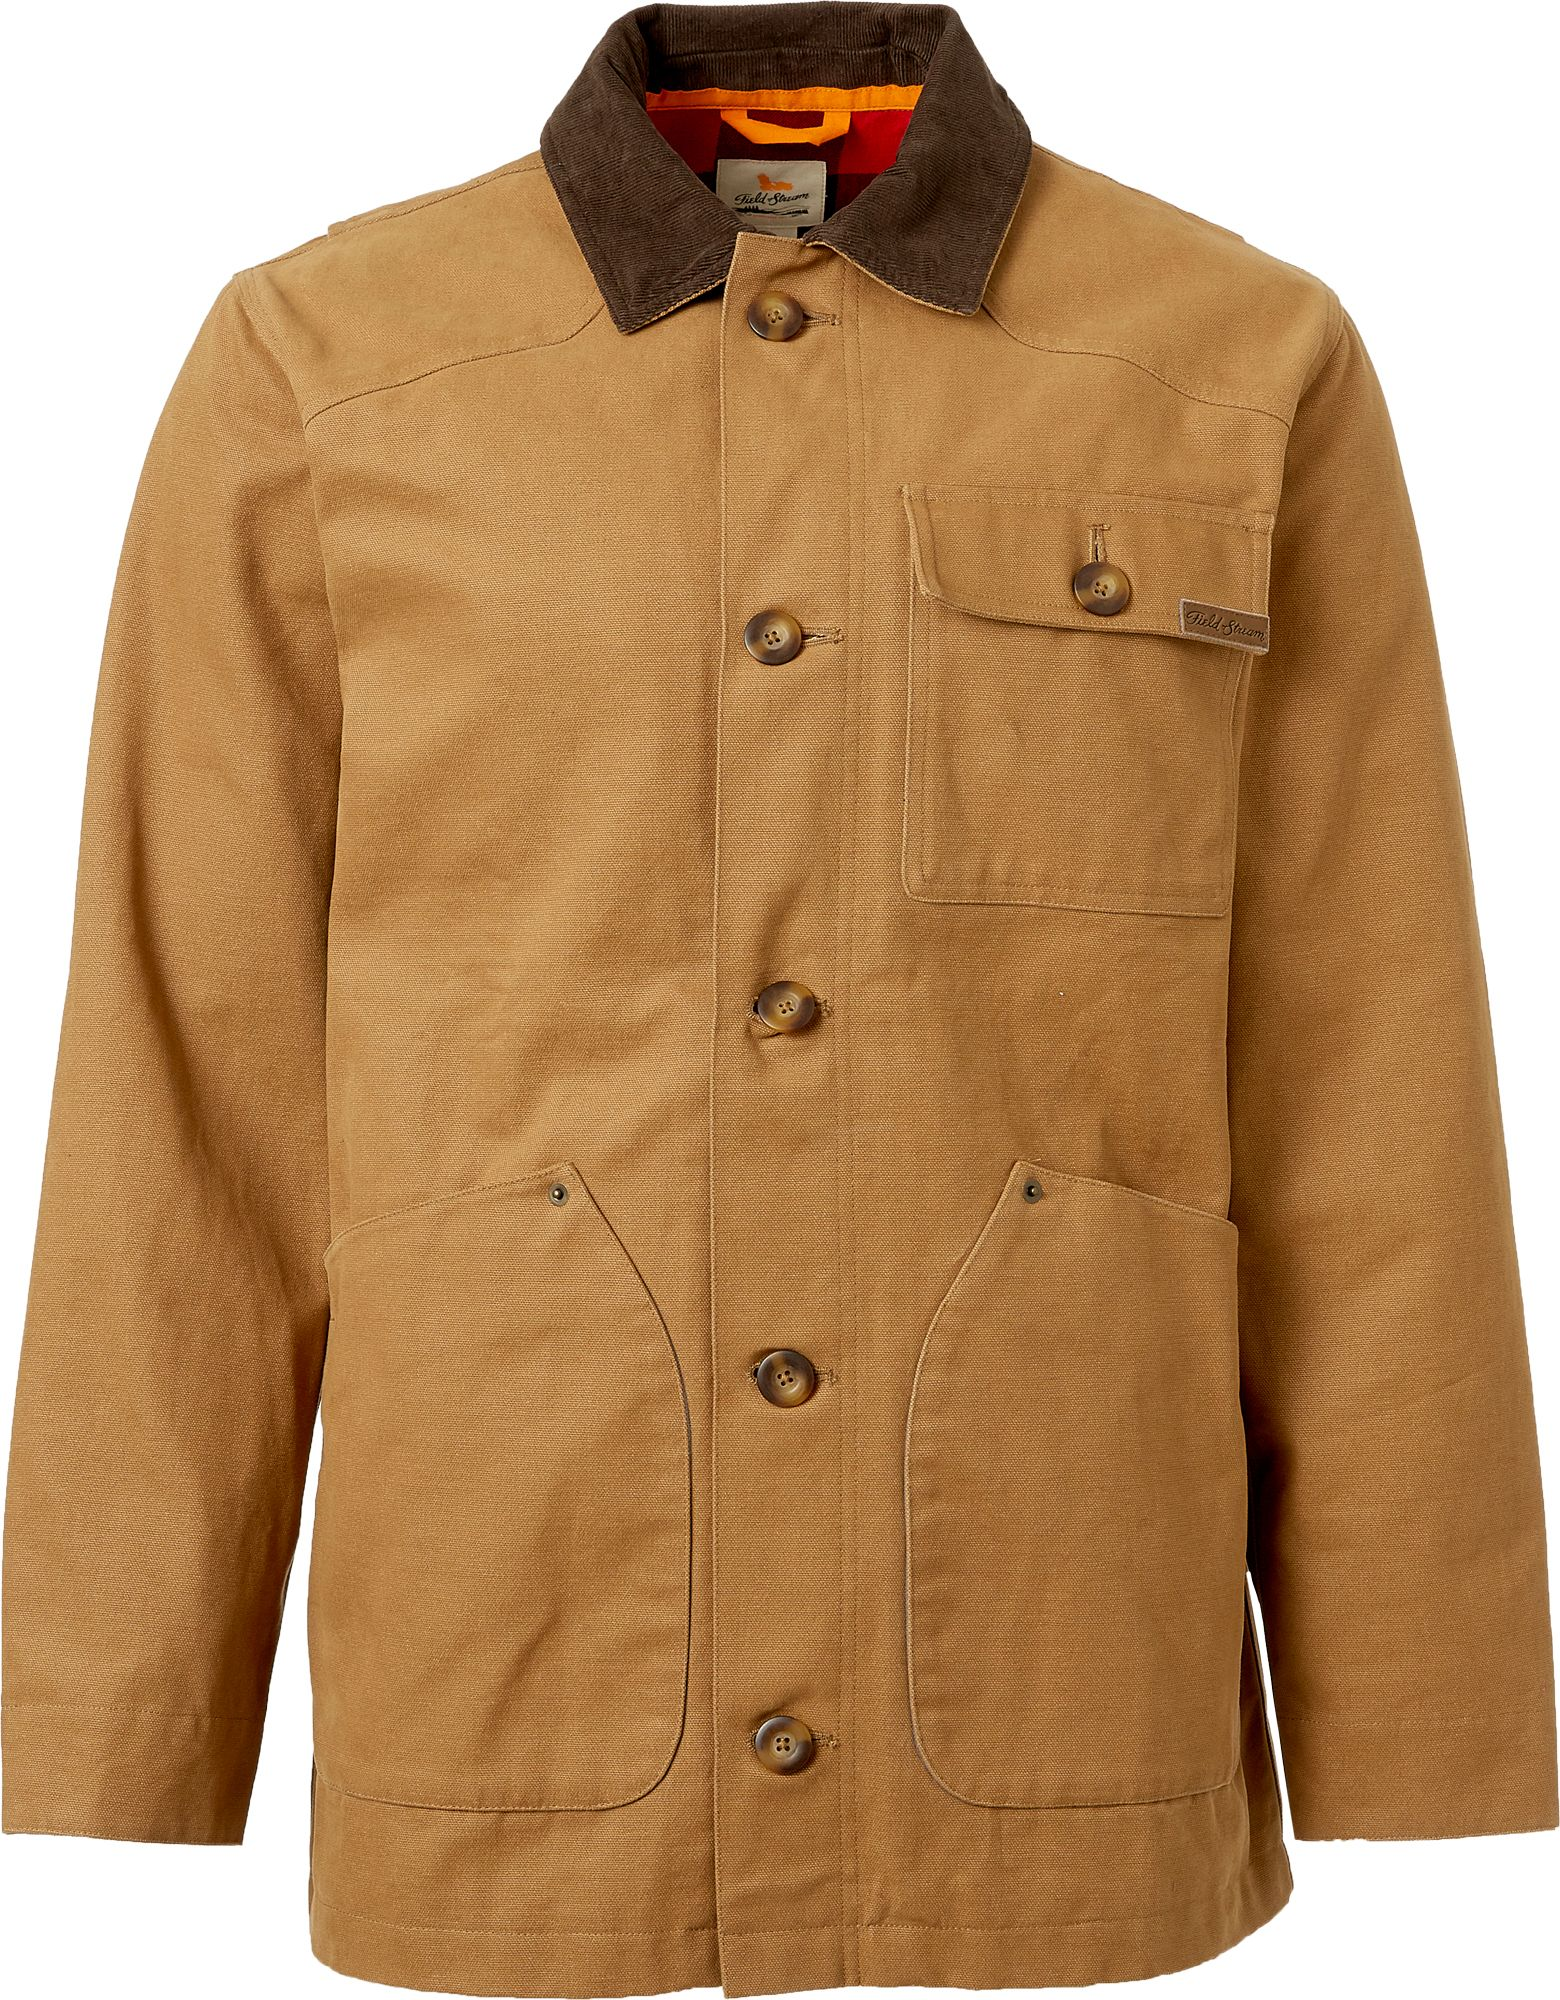 a how barbour barns suit mens for men barn field the over man waxed ashby green coat advice idle manual to jacket wear